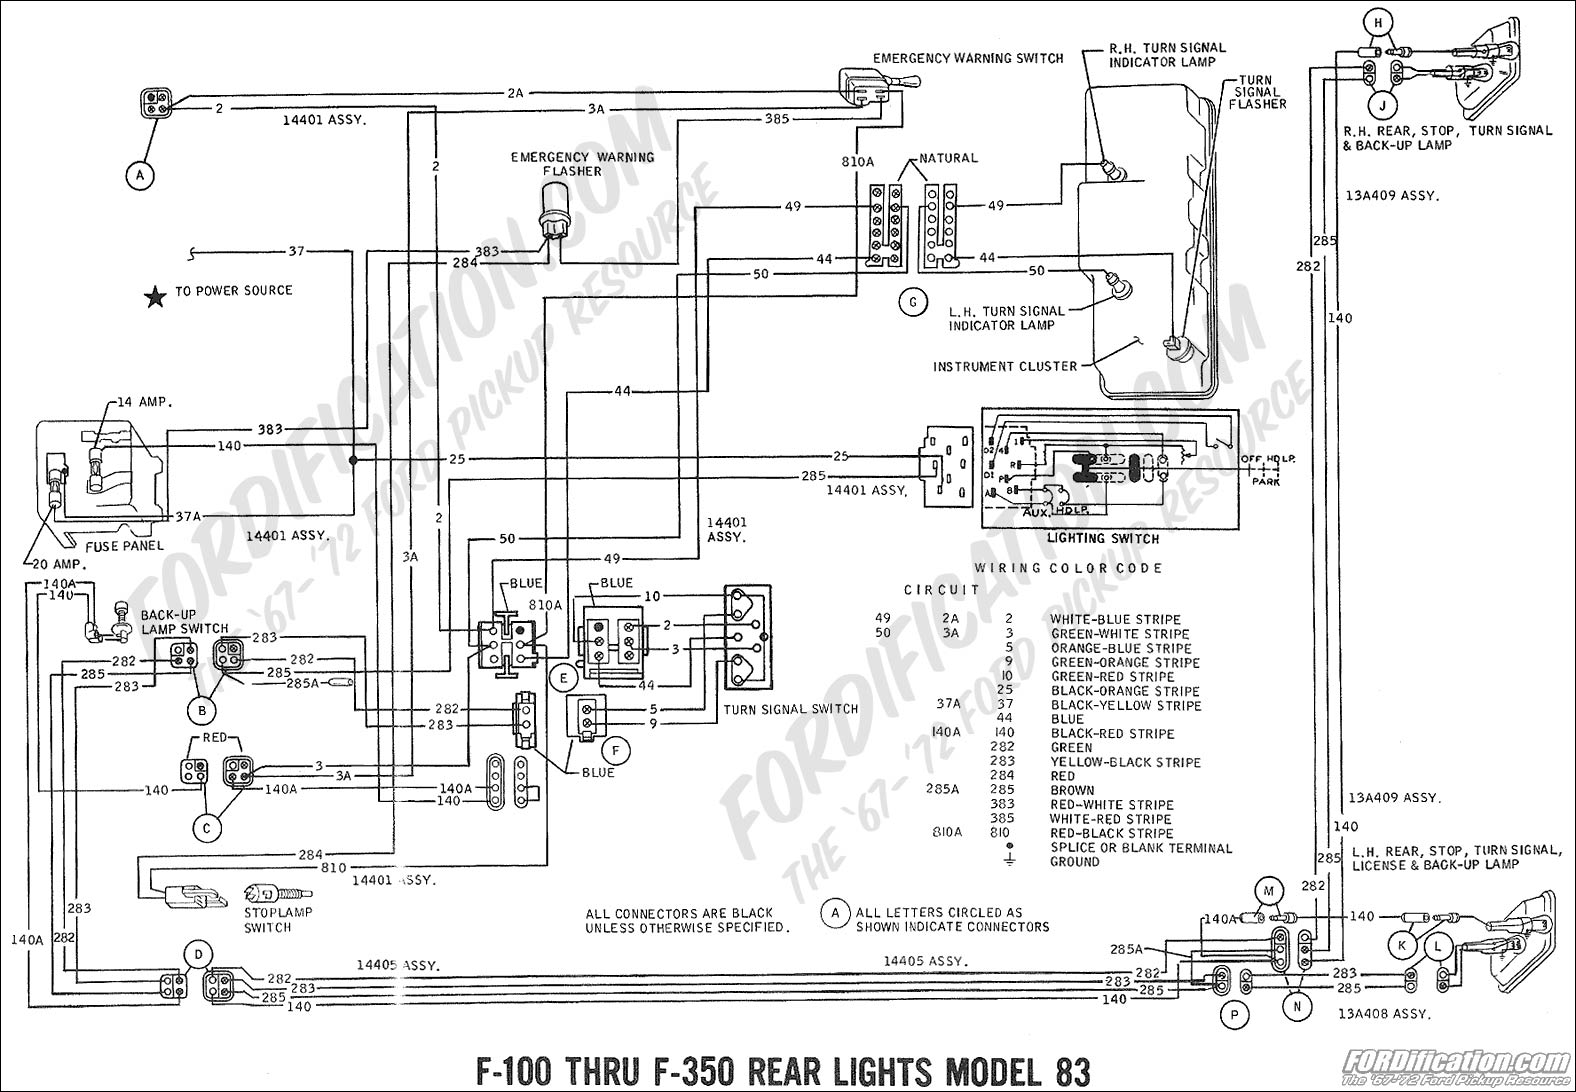 2003 Ford Explorer Radio Wiring Diagram further 2015 Mazda 3 Stereo Wiring Diagram Fresh Mazda 6 Stereo Wiring Diagram And Speaker Roc Grp further 06 Crown Vic Fuse Box Diagram additionally Discussion T10175 ds721151 furthermore 1982 Gmc Truck Engine  partment. on ford mustang fuse box diagram